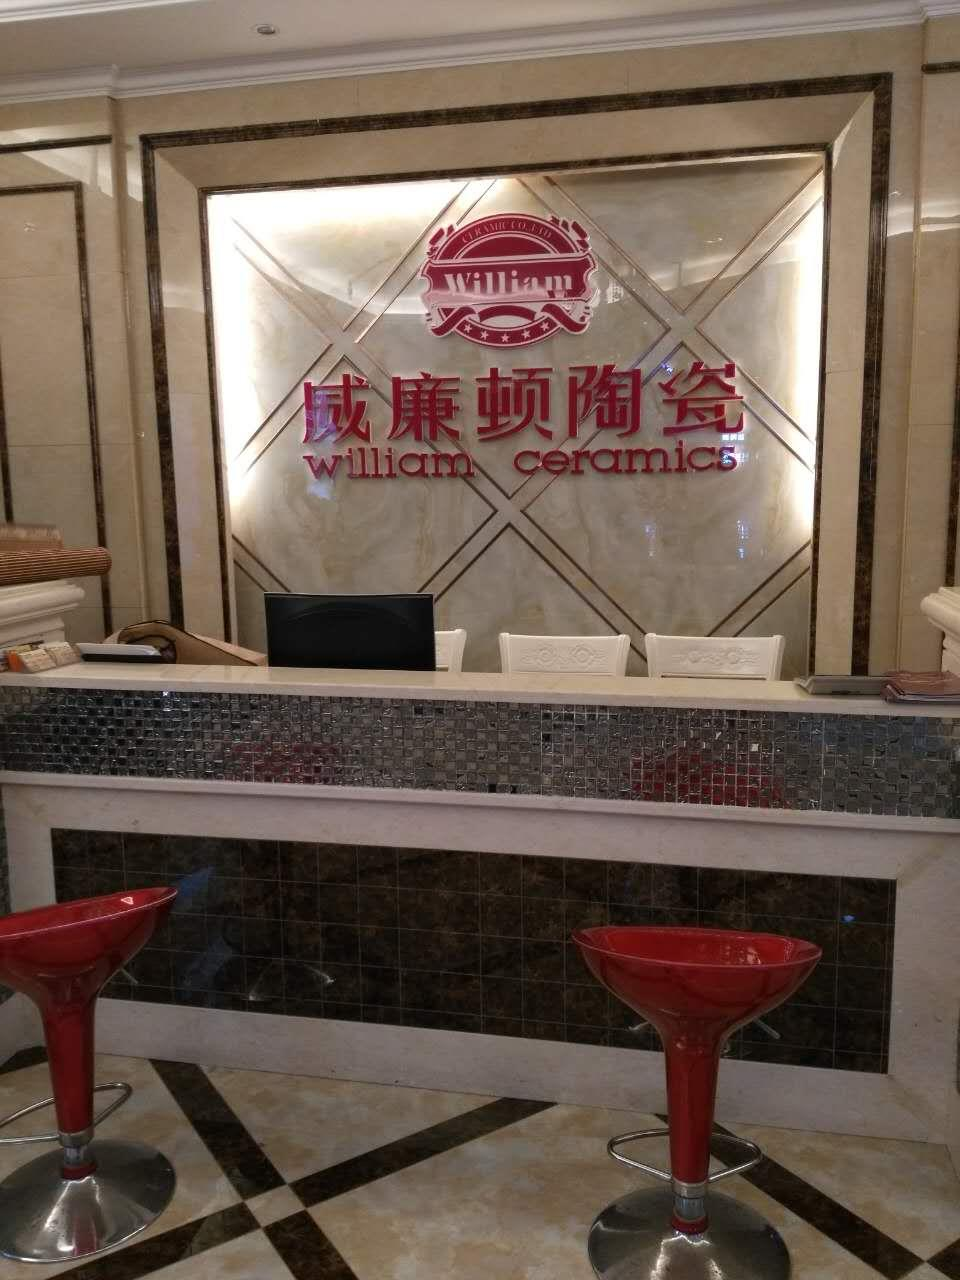 Interview with Williamton Ceramics Outstanding Distributor|He has worked hard with Williamton for ..